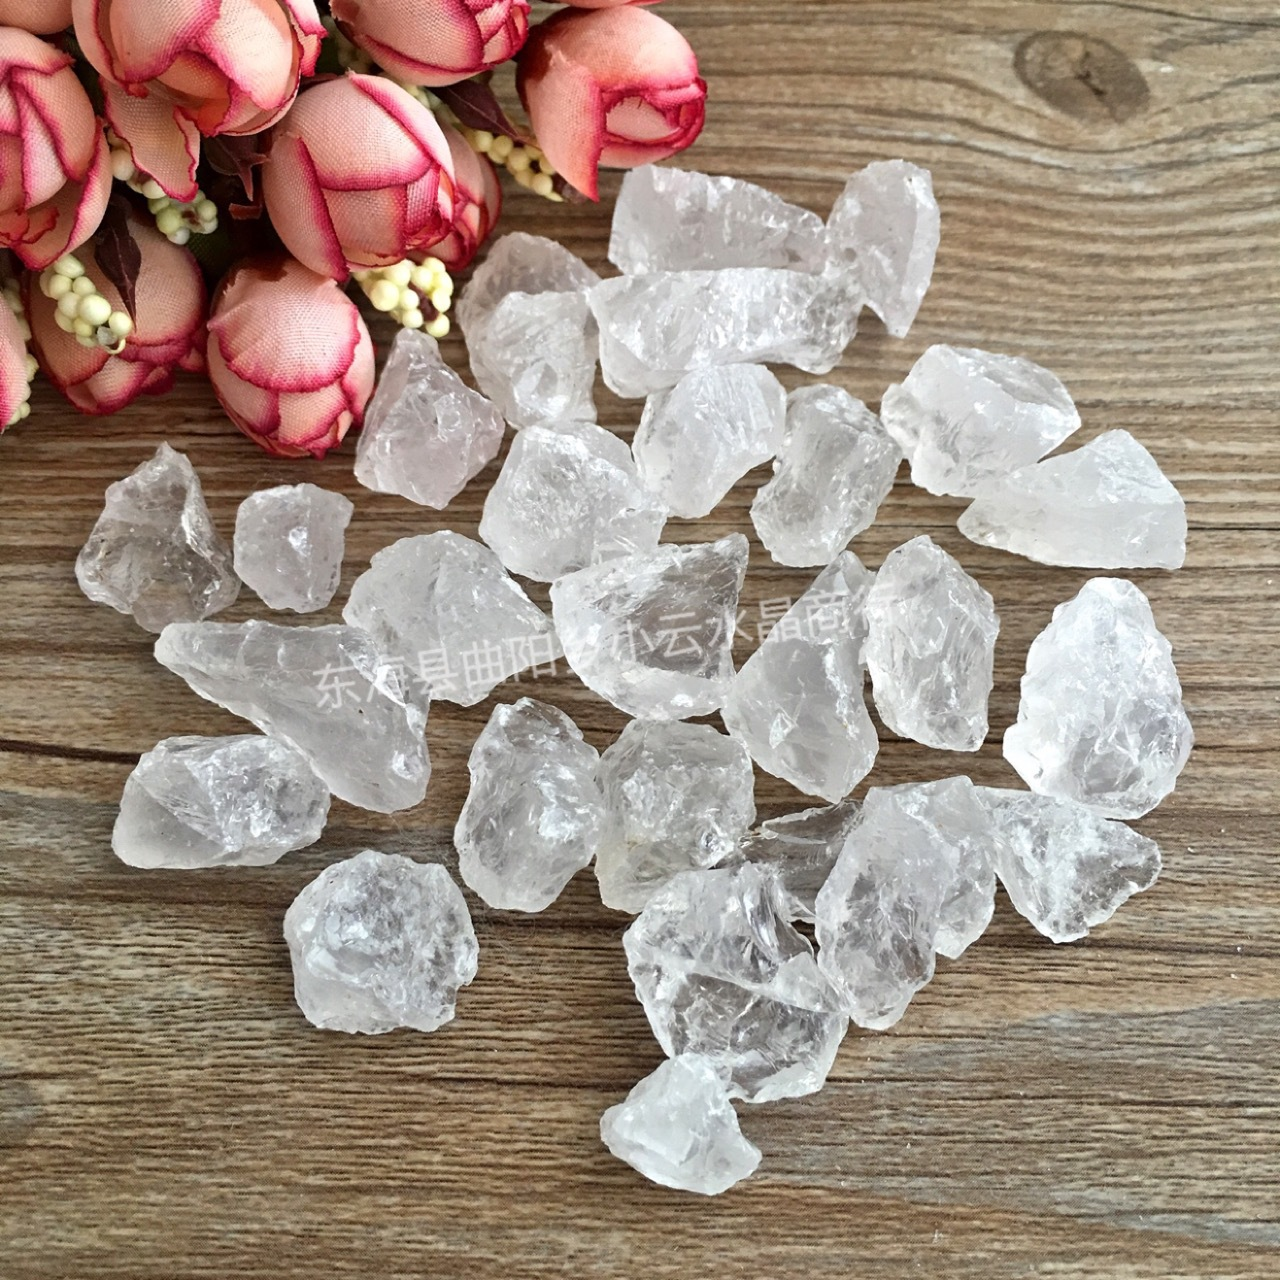 50g Lot Tibet Natural Clear Crystal White Quartz Points Terminated Wand Specim I